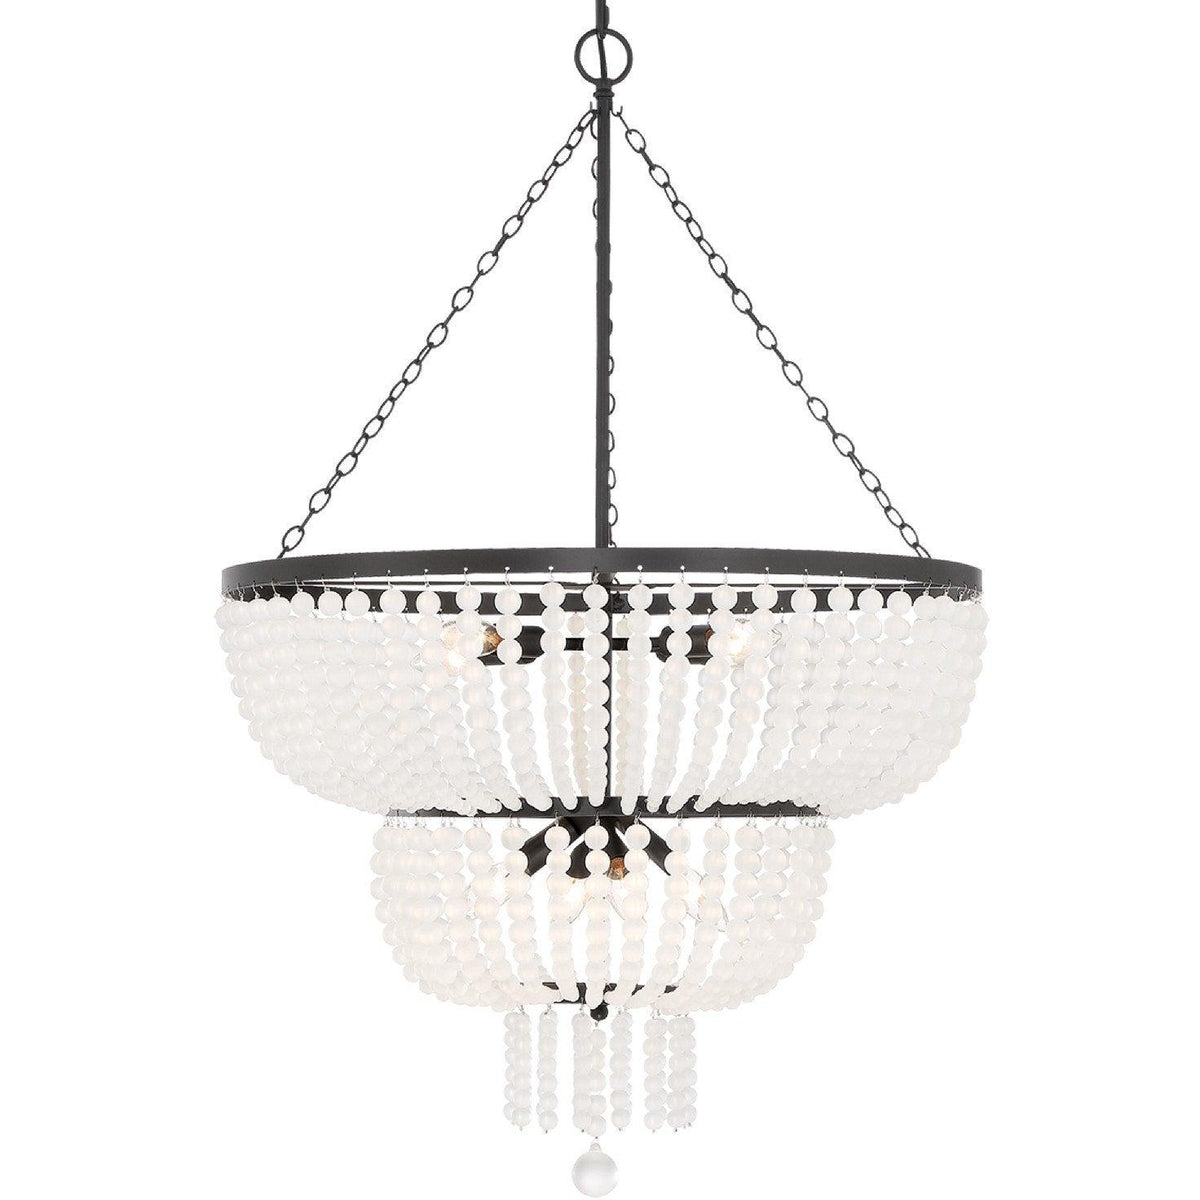 Crystorama - 610-MK - Eight Light Chandelier - Rylee - Matte Black